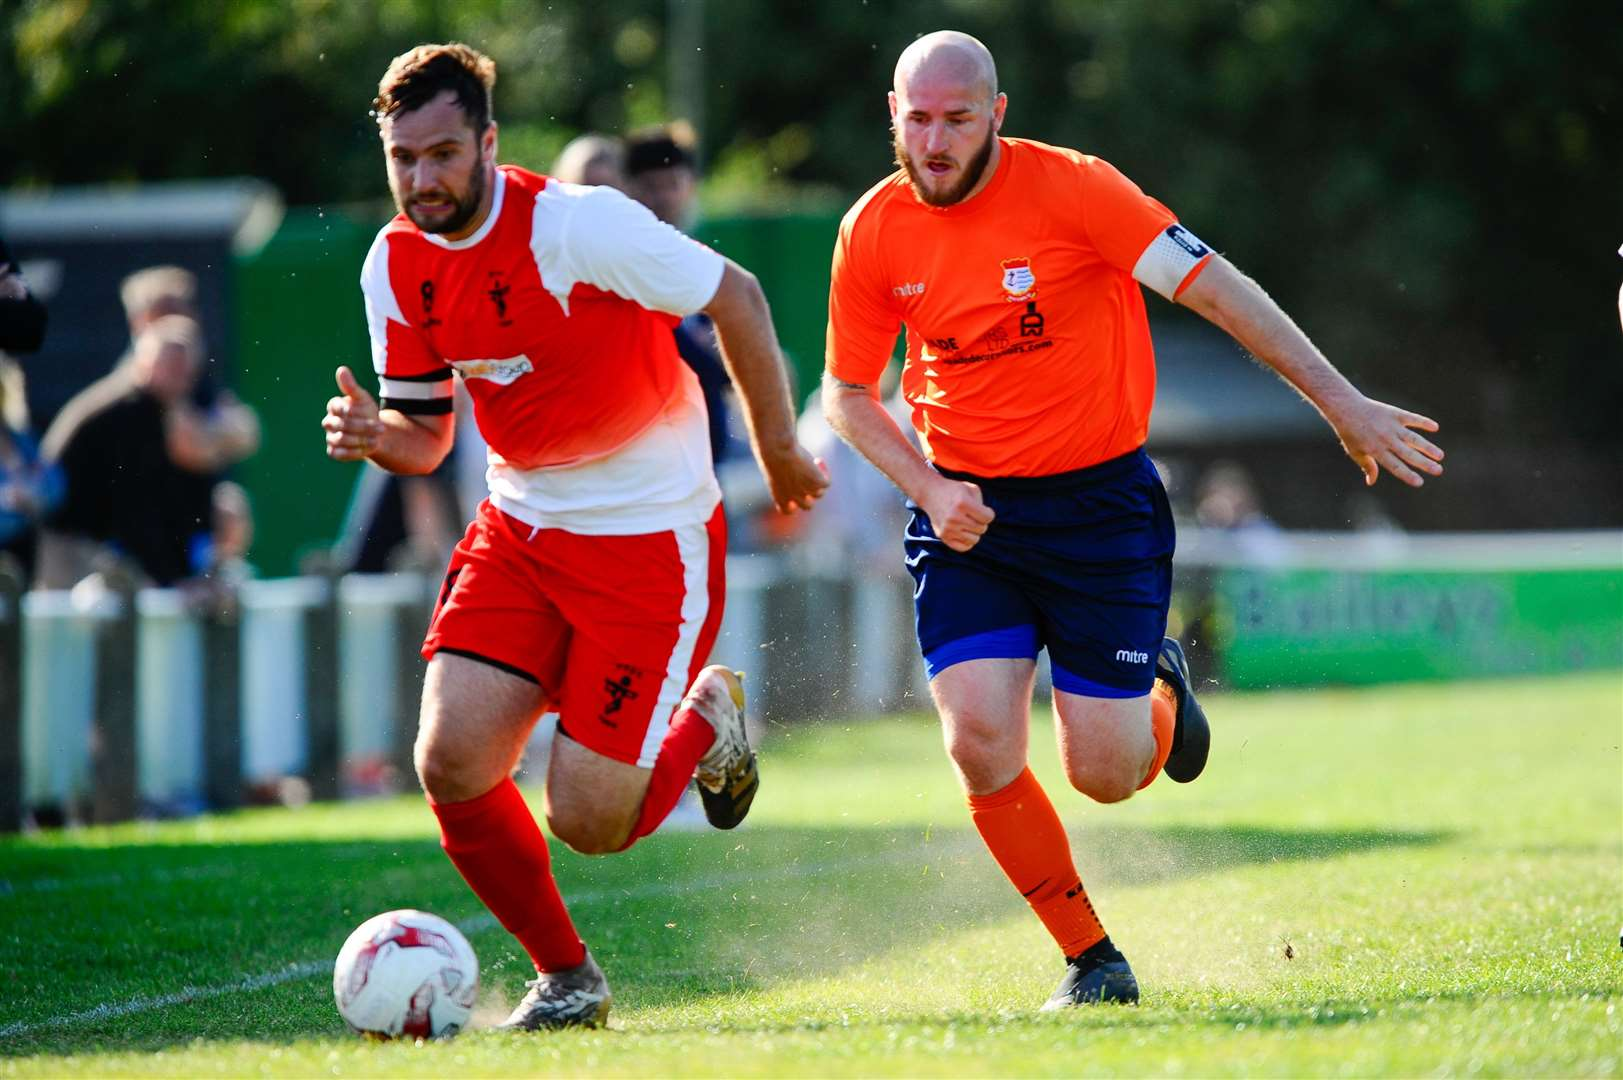 Diss, Norfolk, 19/09/2020..Football action from the FA Vase between Diss Town FC v Fakenham Town - Kyle Baker..Picture: Mark Bullimore Photography. (42328599)